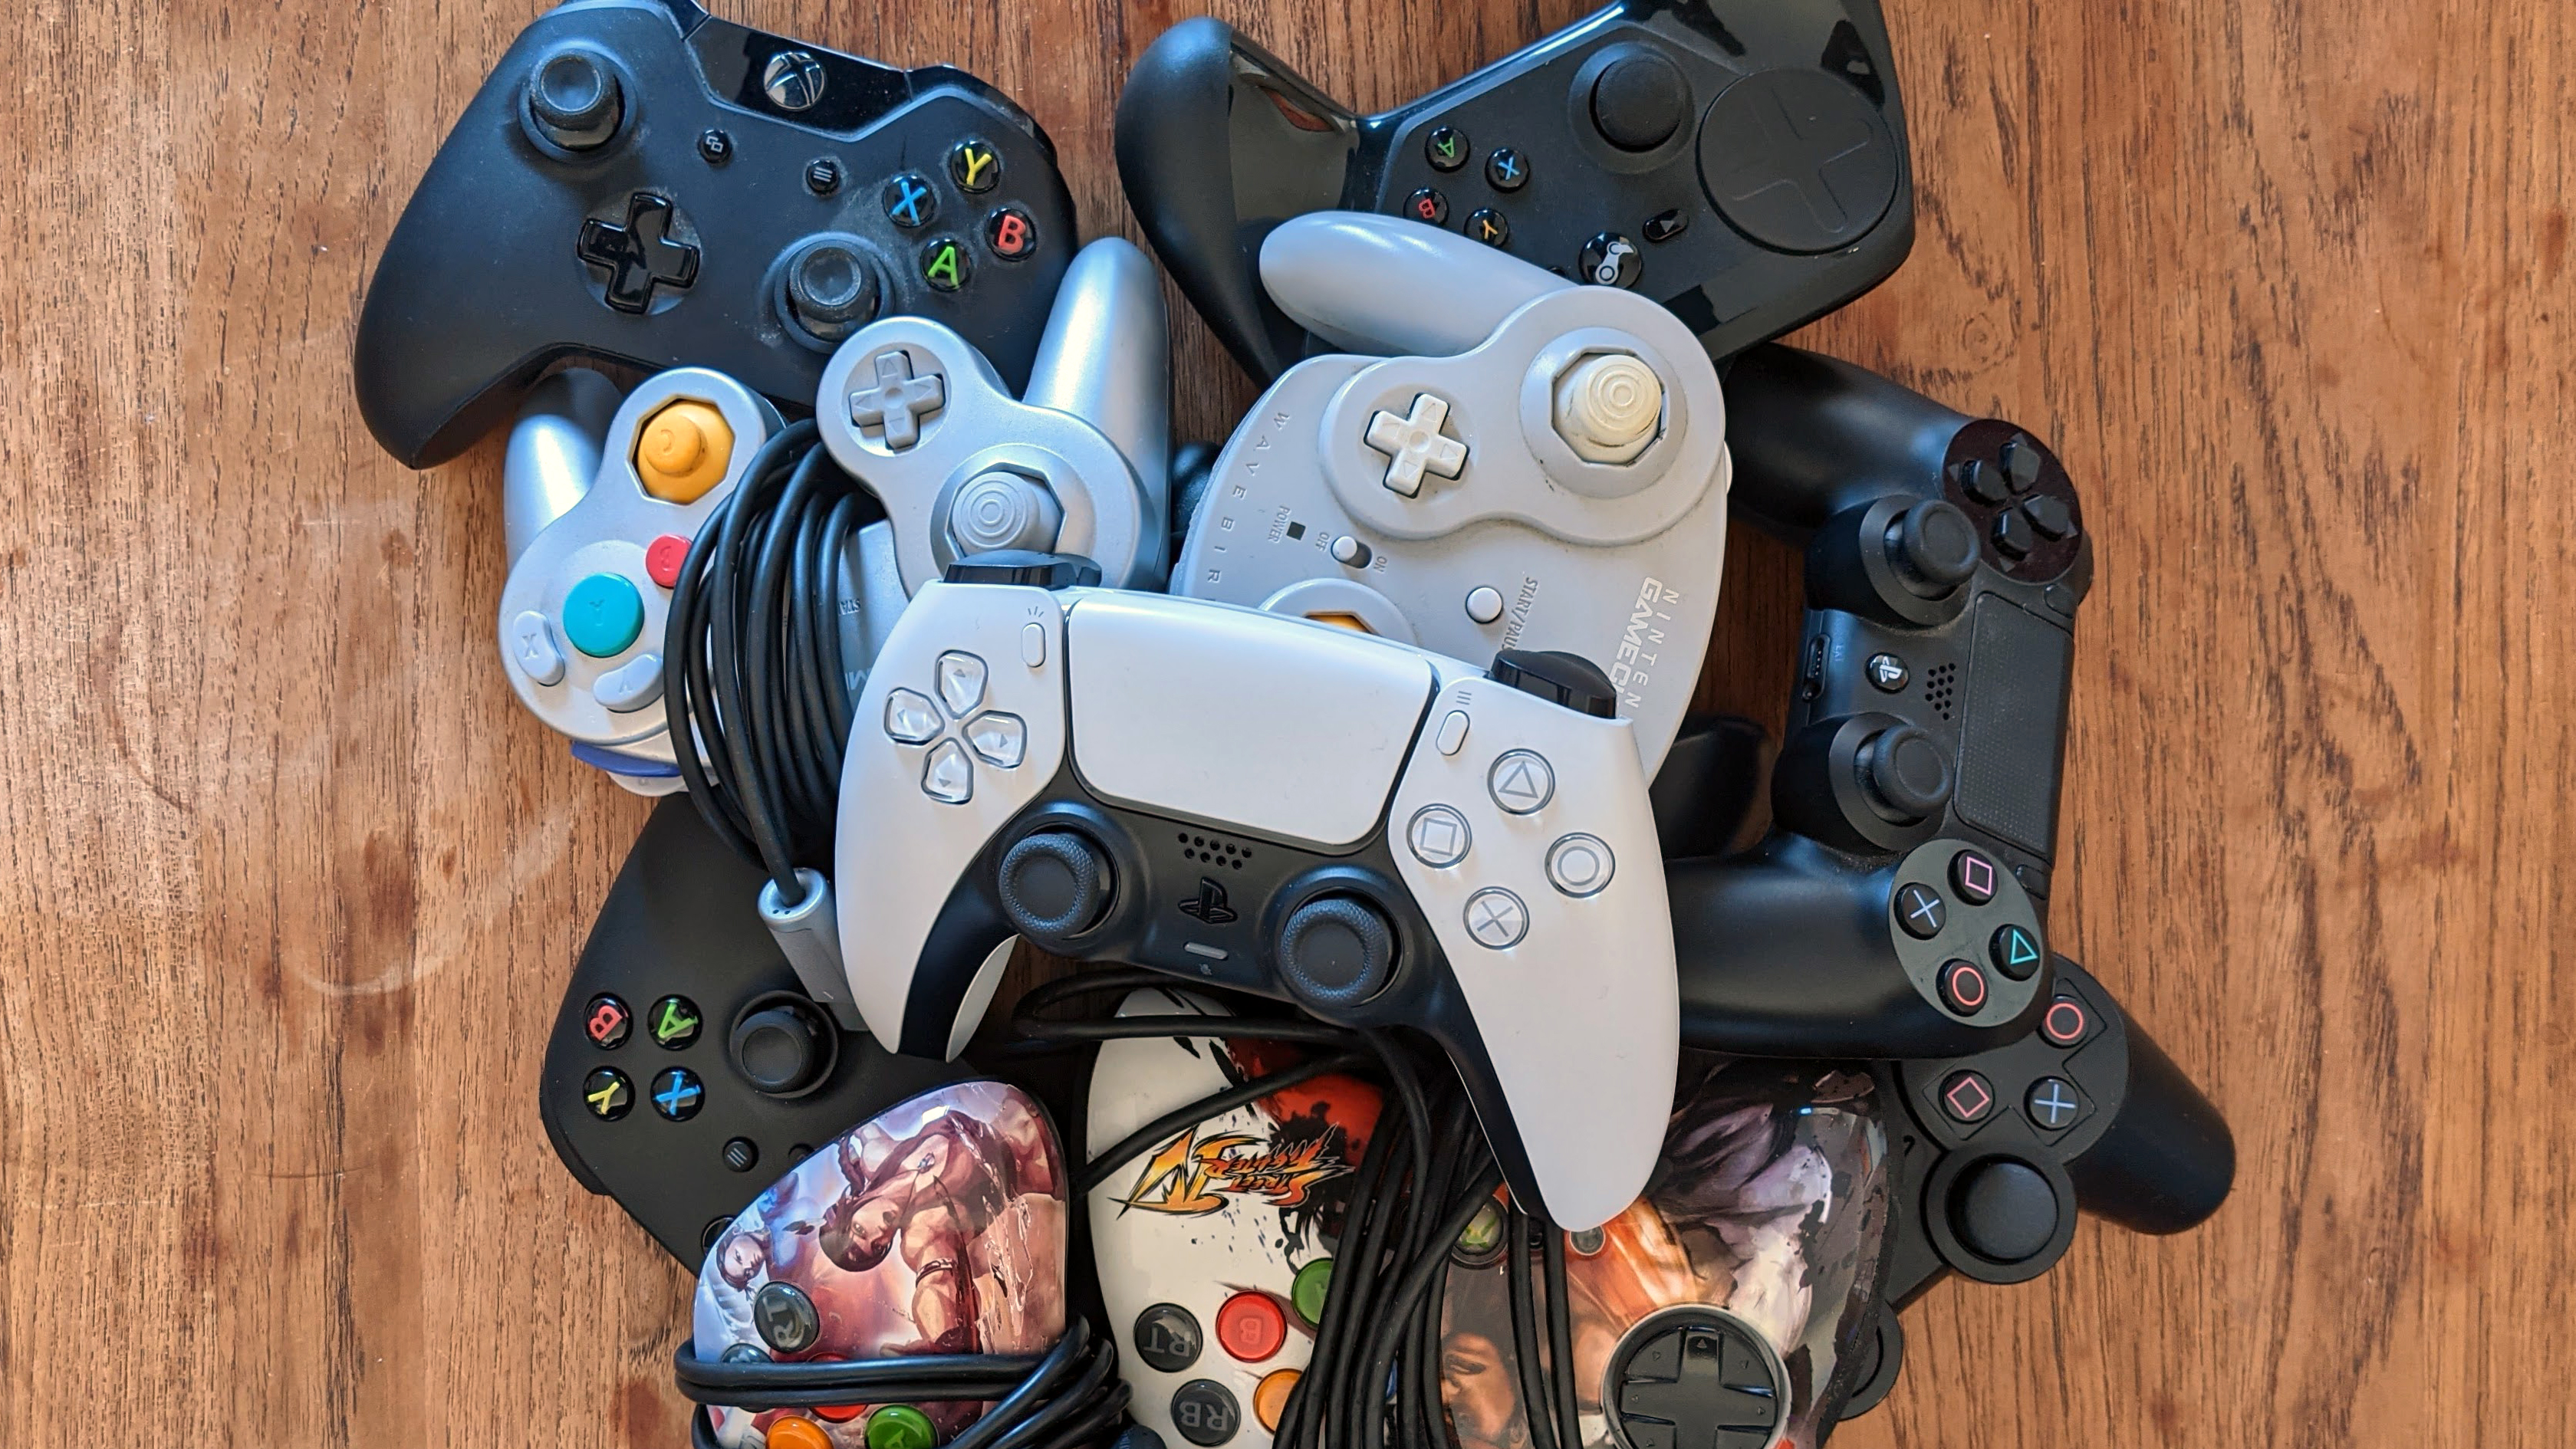 48 million players use controllers on Steam